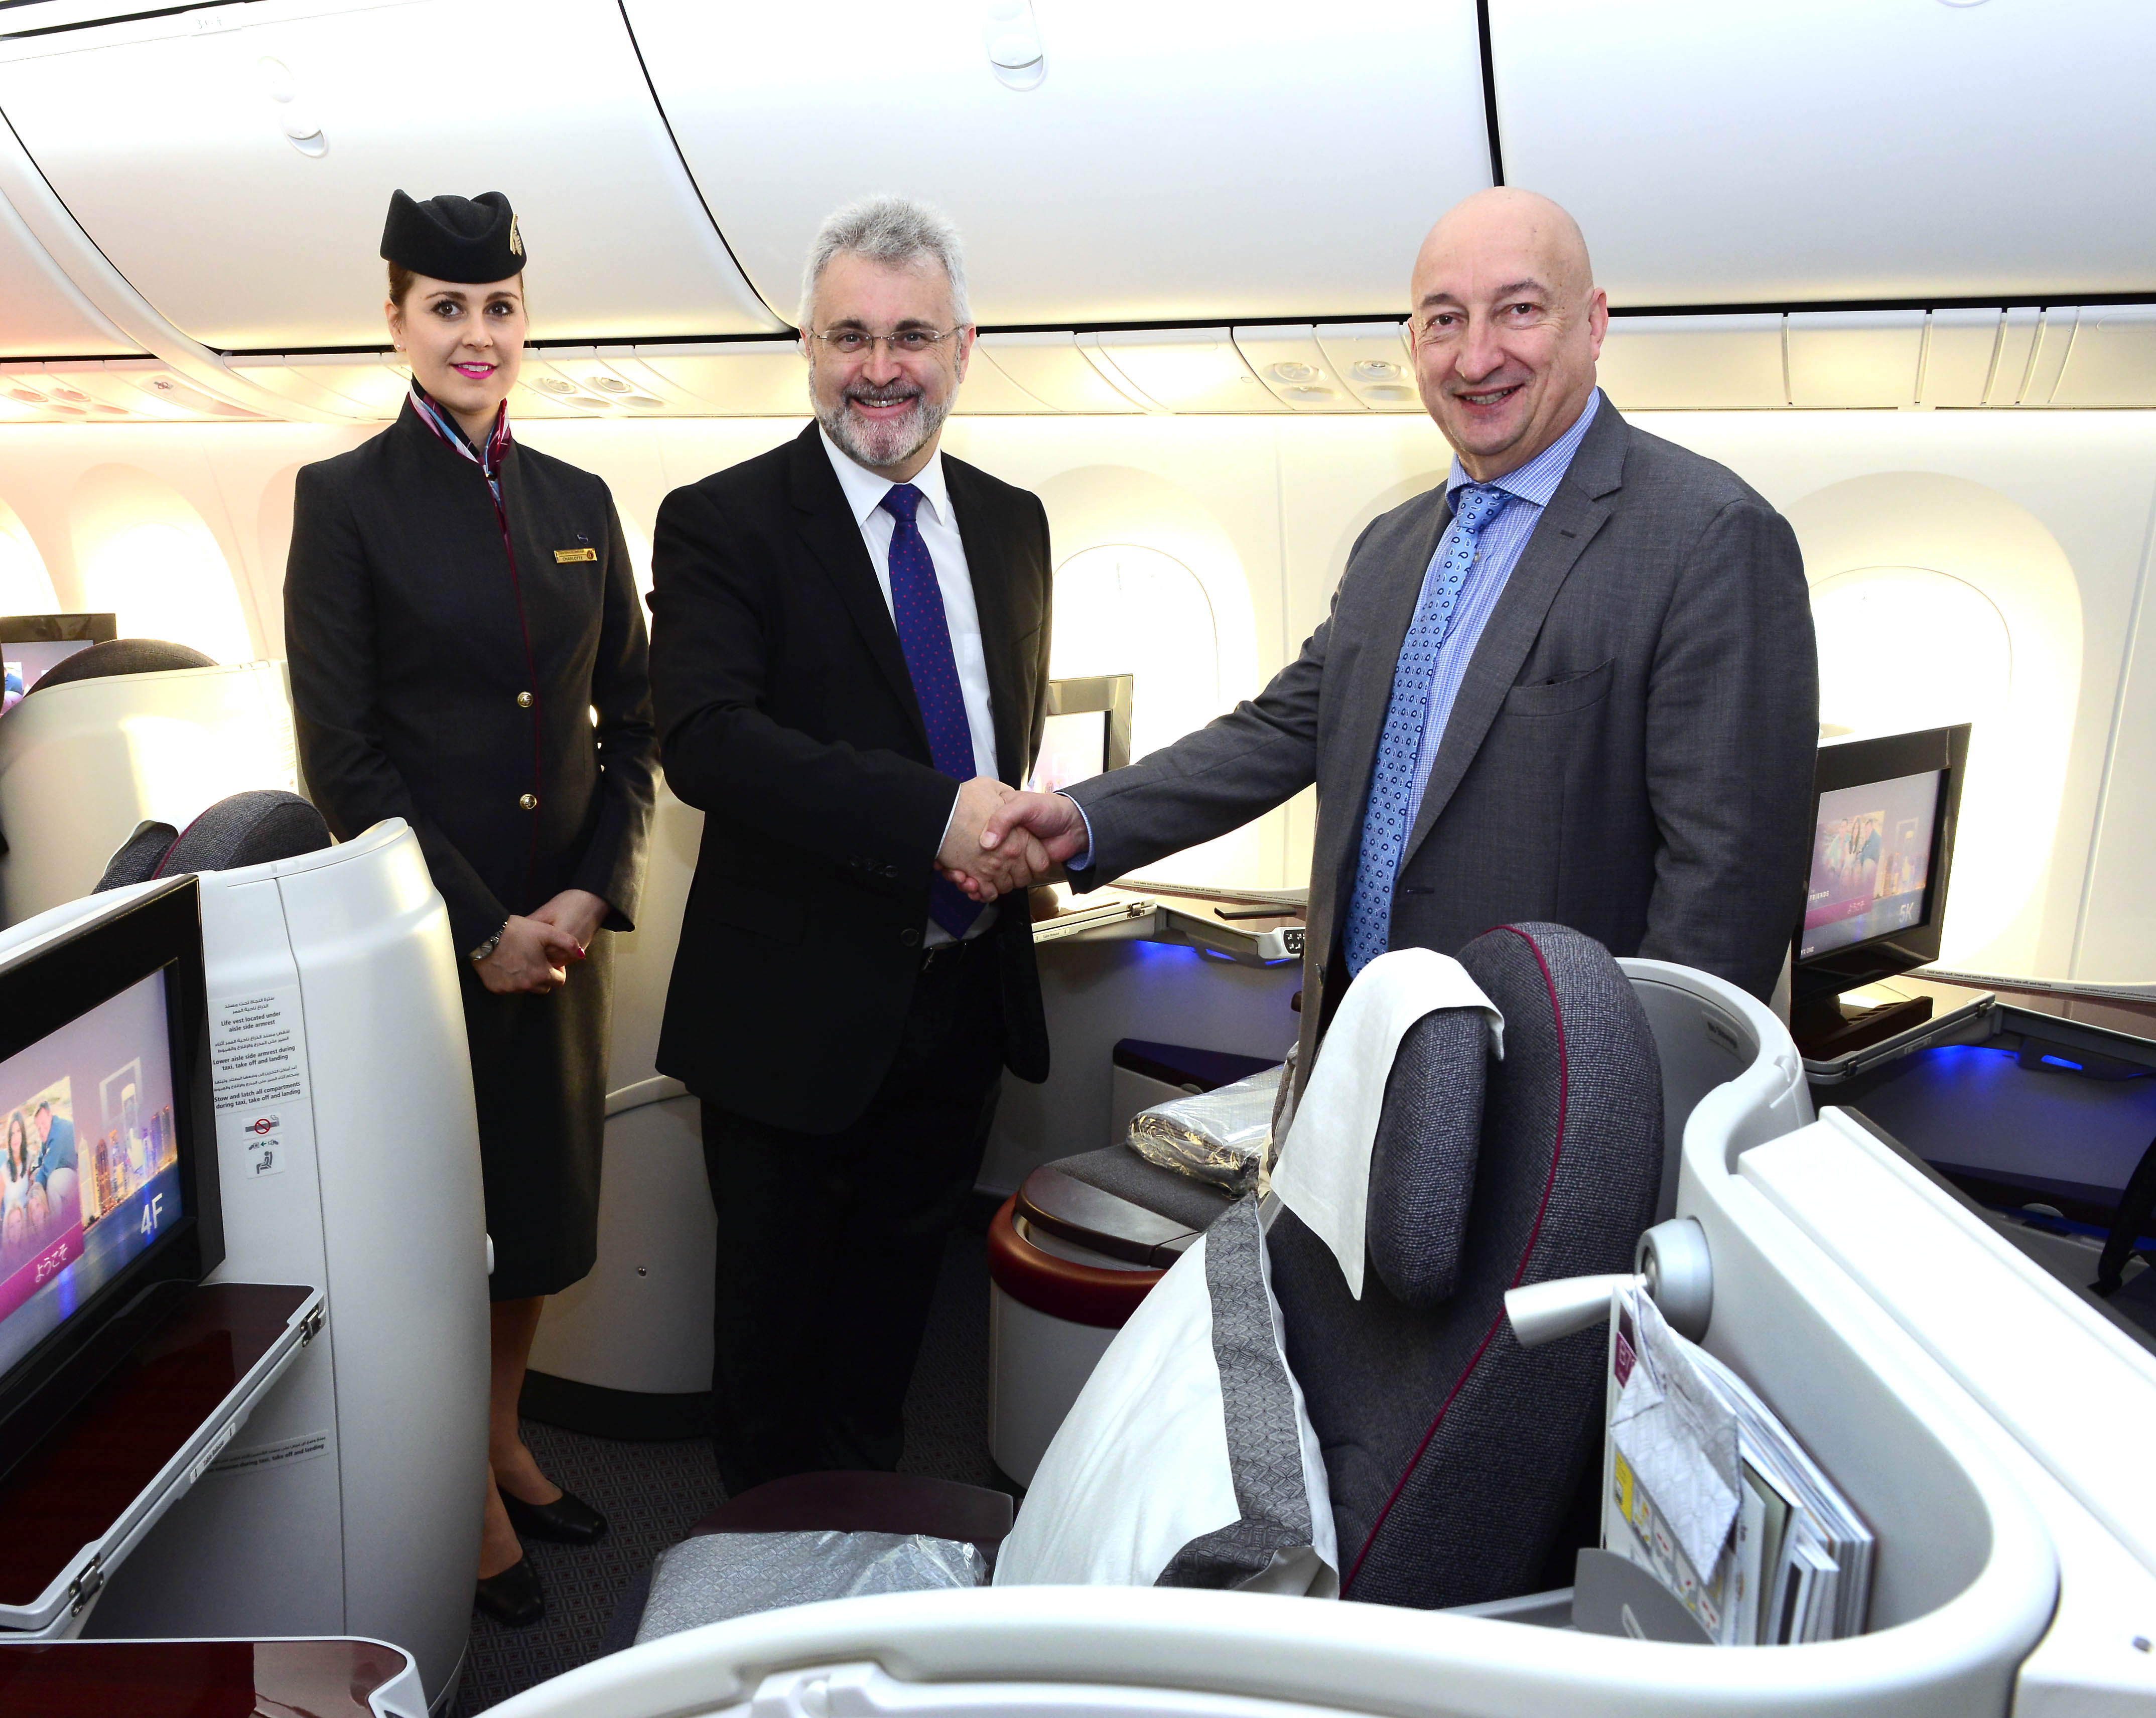 Qatar Airways' Chief Commercial Officer, Dr. Hugh Dunleavy (right), who travelled on board the inaugural flight was greeted by Birmingham Airport's Chief Executive Officer, Mr. Paul Kehoe (left). Picture by Qatar Airways.